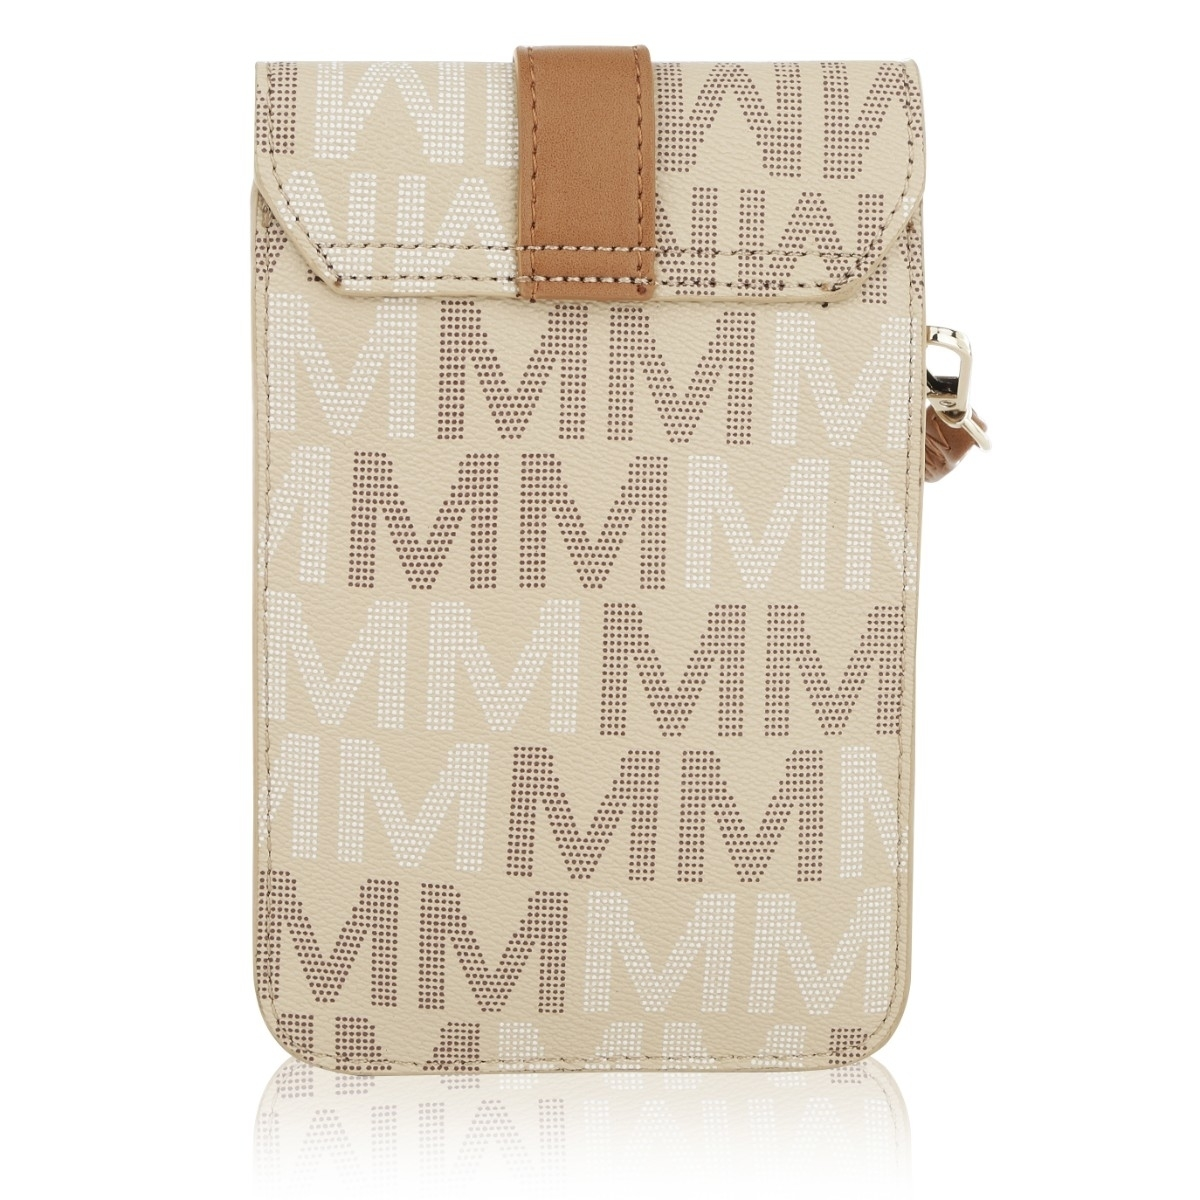 5953bd111 MKF Collection Lulu XL M Signature Phone Wallet Crossbody Bag by Mia K  Farrow-in Top-Handle Bags from Luggage & Bags on Aliexpress.com | Alibaba  Group